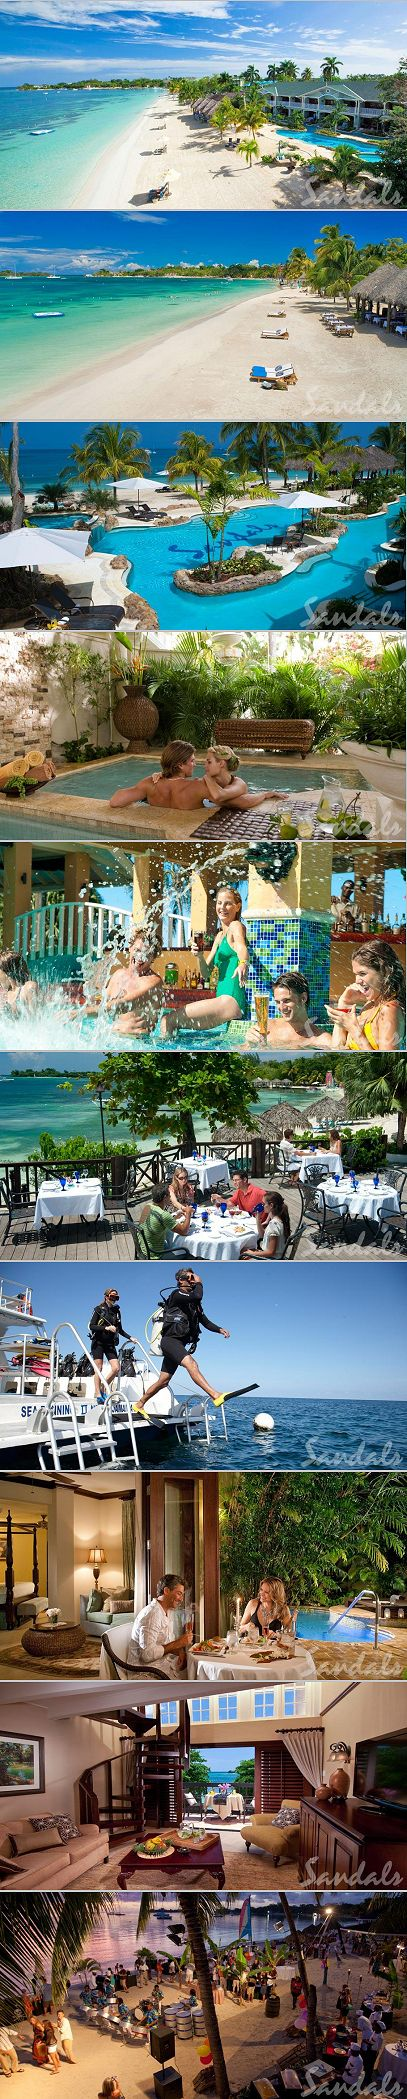 The Best Caribbean All Inclusive Resorts For Couples:  Sandals Negril